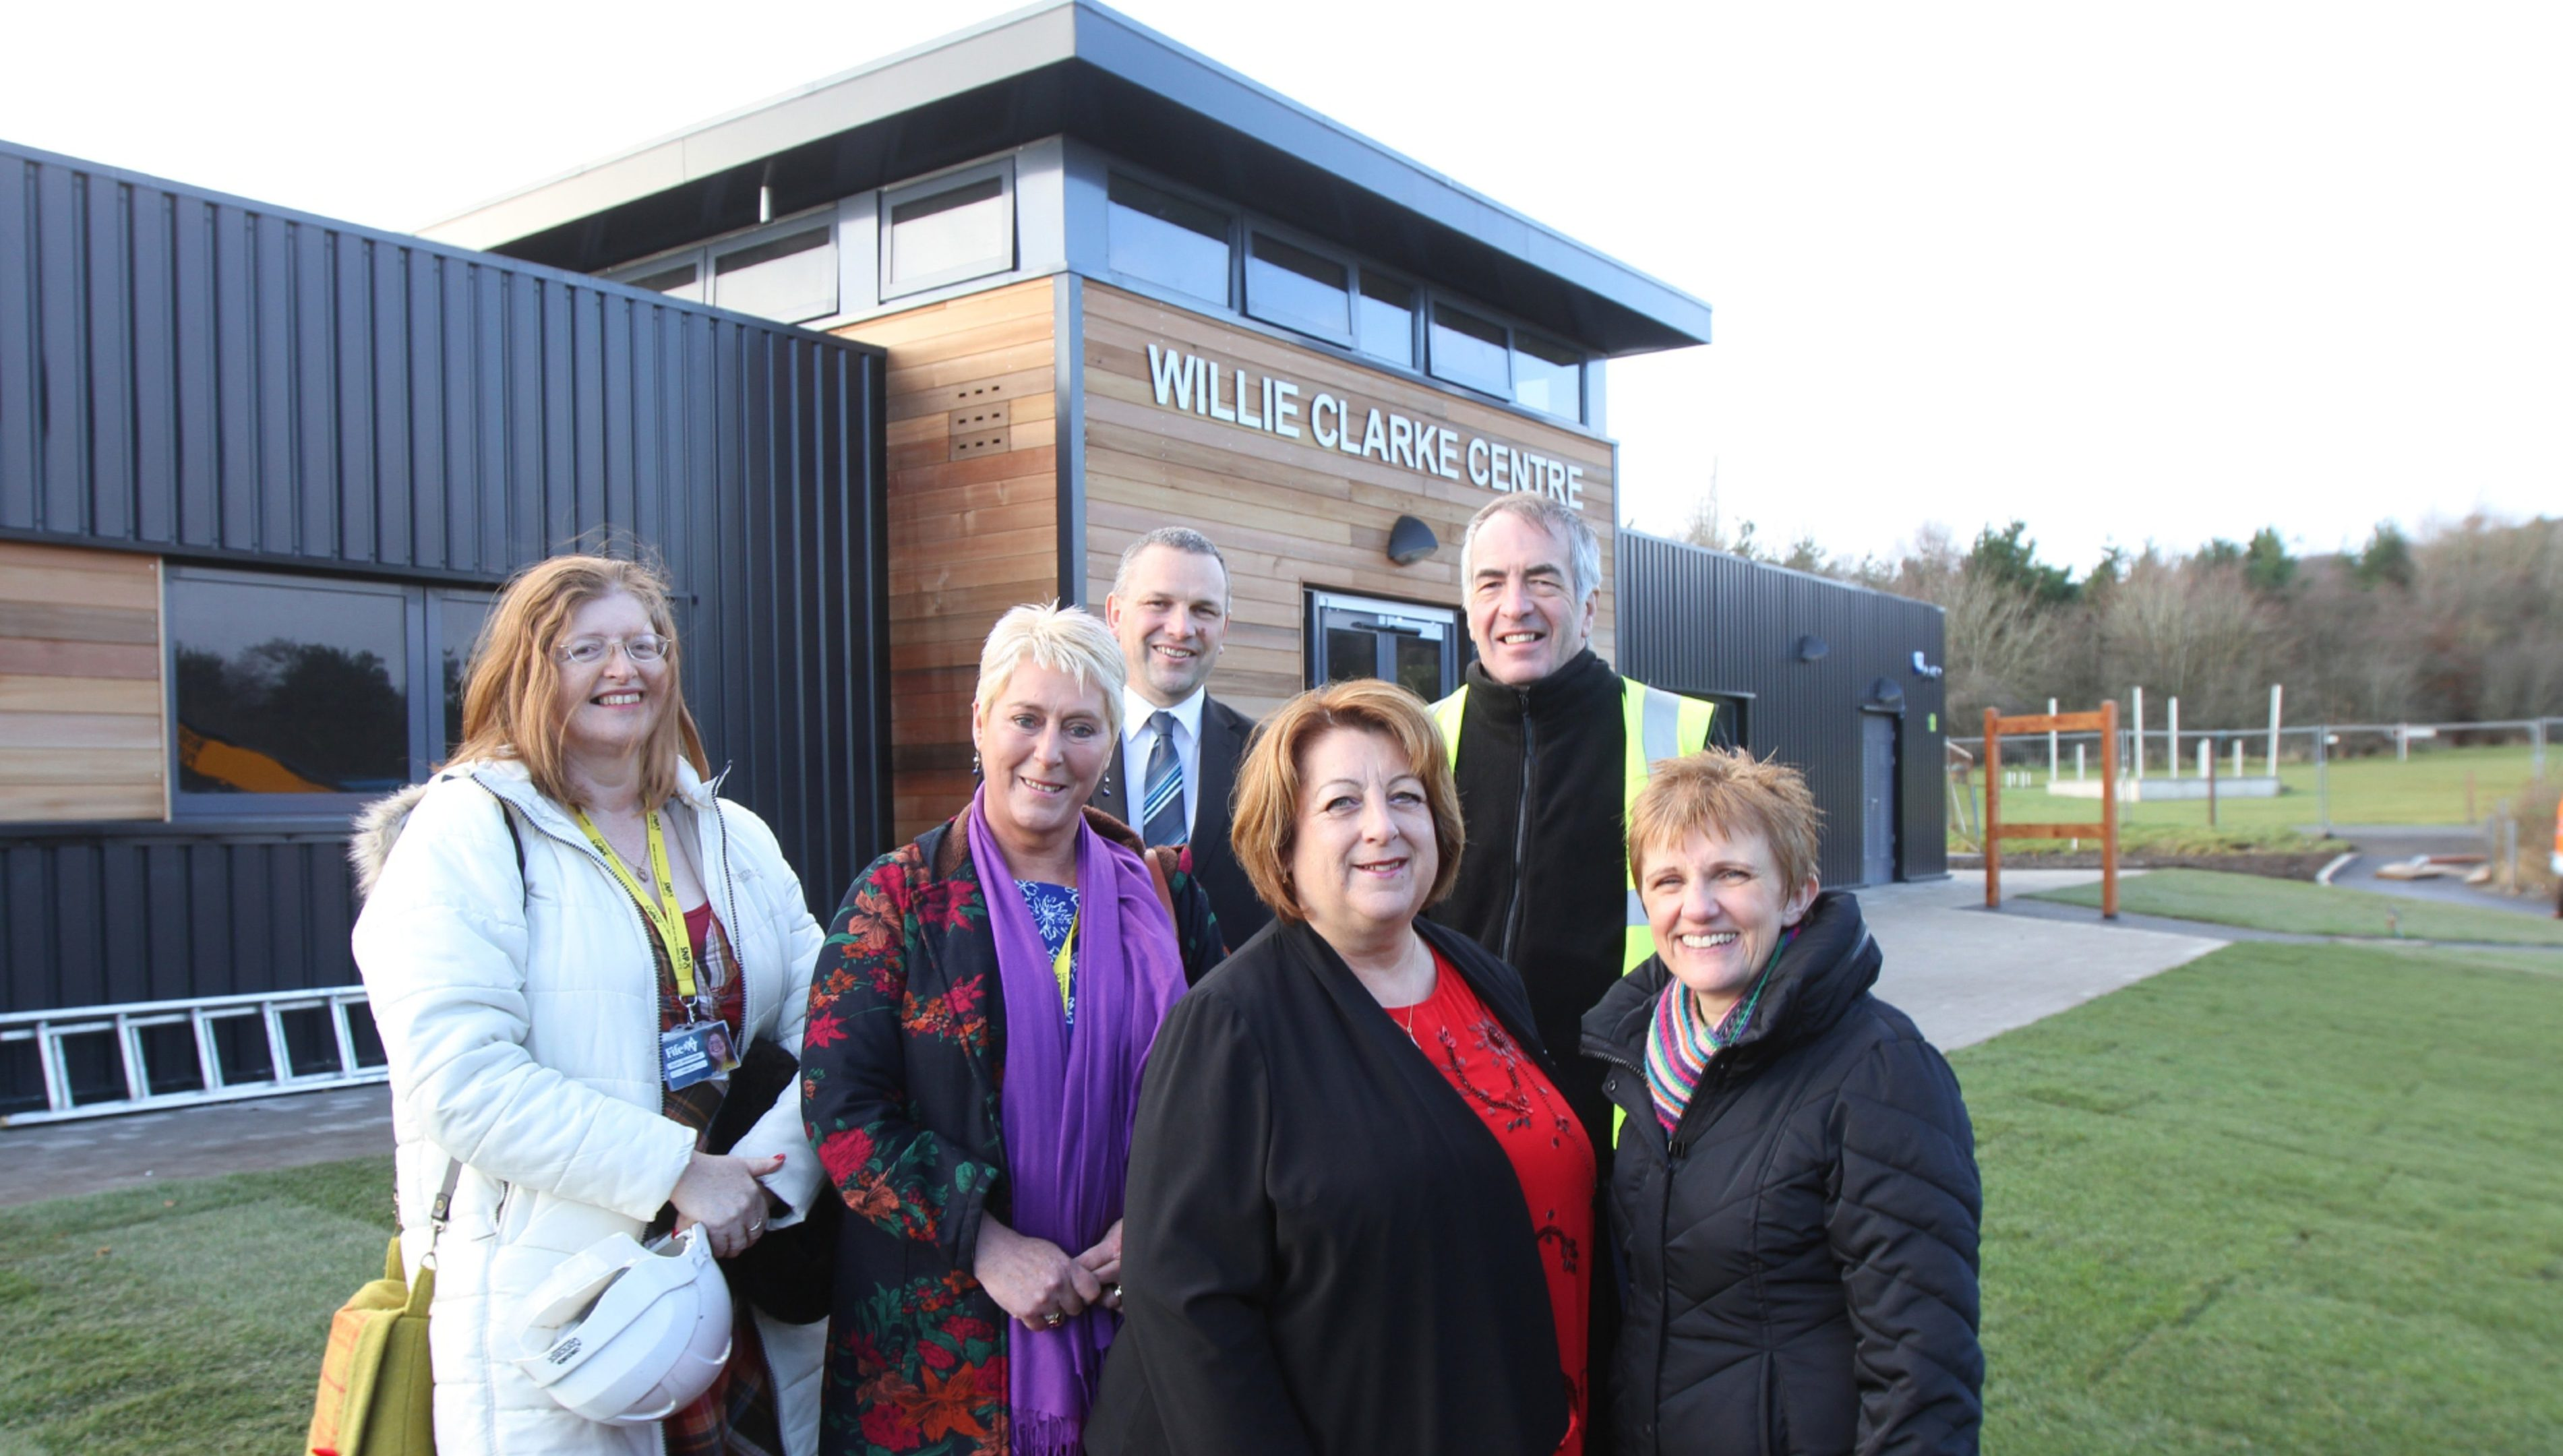 Pic shows; Councillors Lesley Backhouse, Rosemary Liewald, Linda Erskine and Judy Hamilton with Ian Laing - Park Manager and Gavin Turner - Architect.